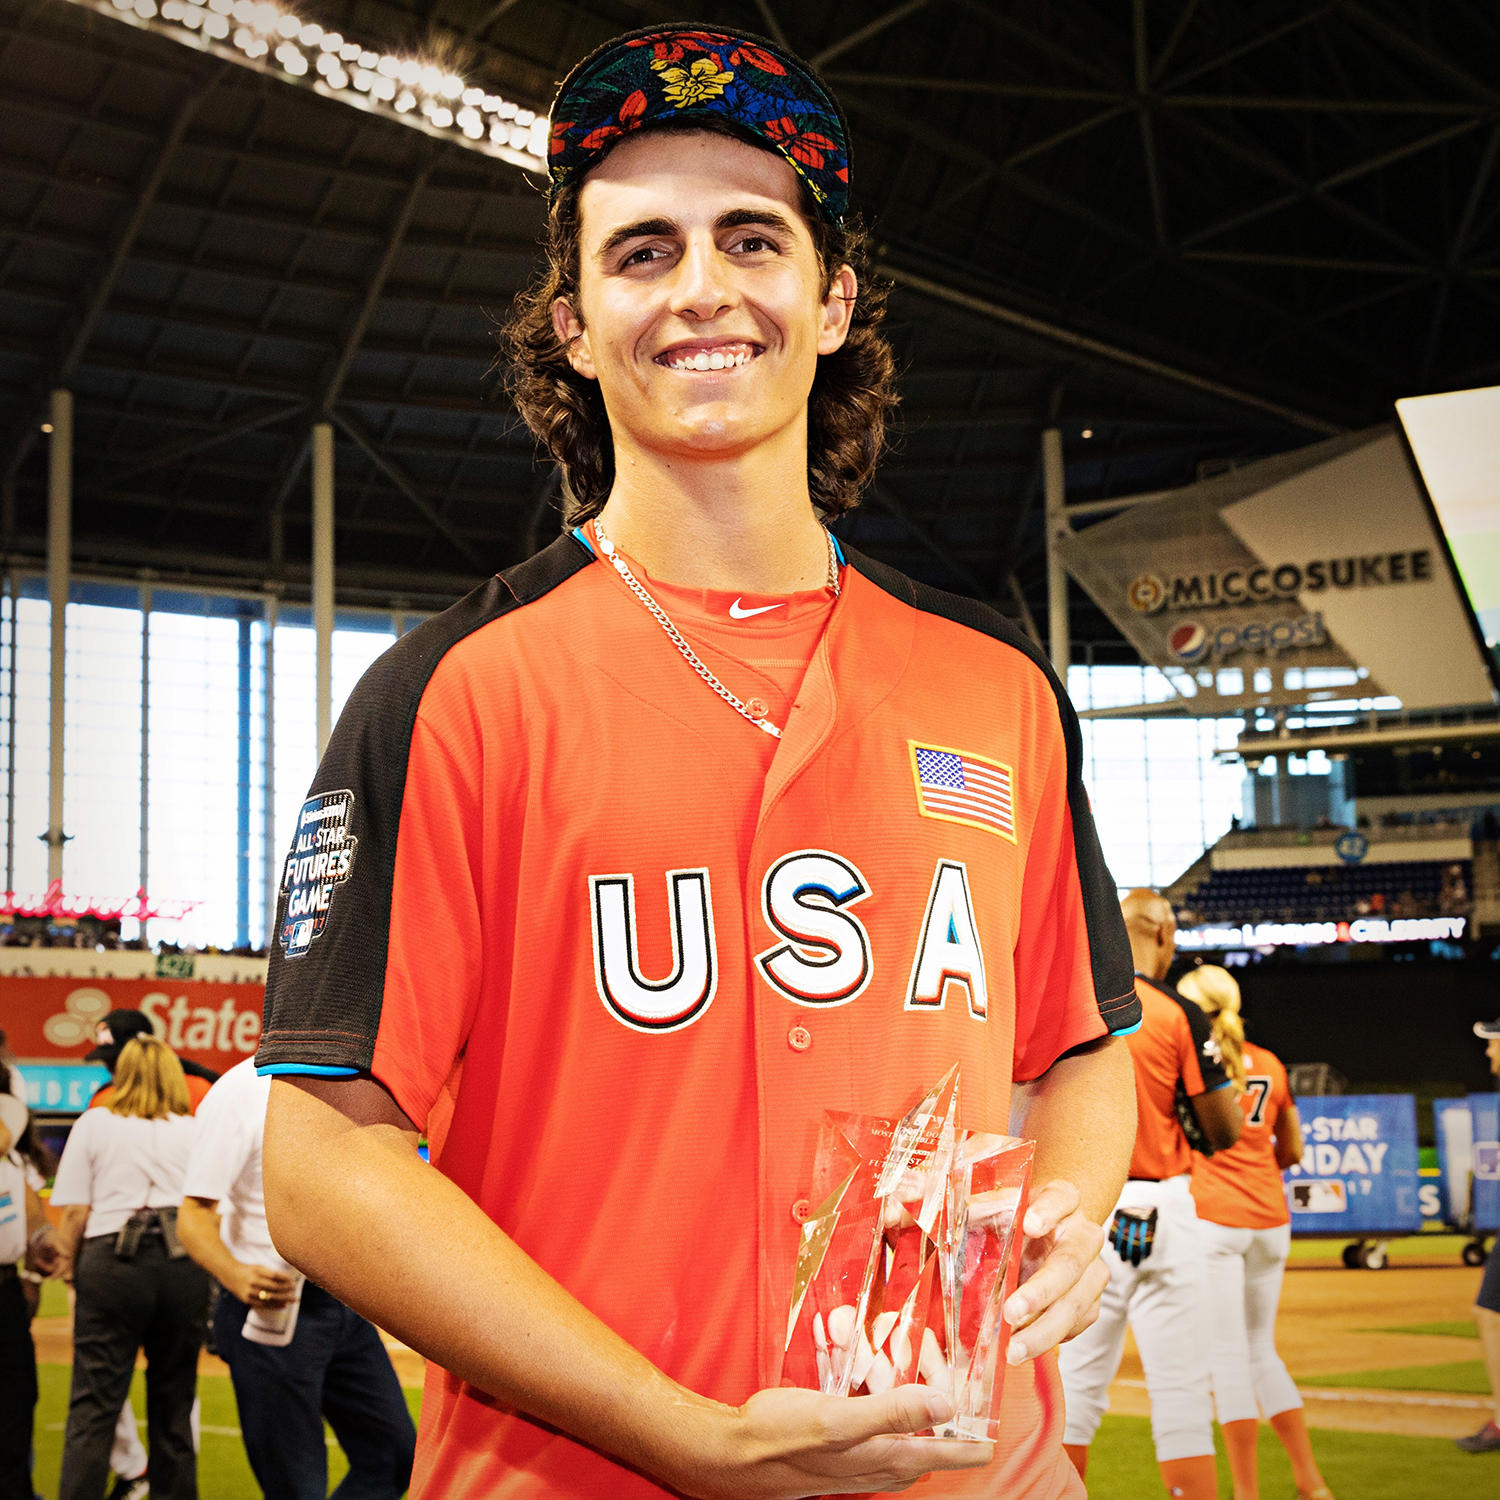 Brent Honeywell poses with his MVP Award, earned during the 2017 All-Star Futures Game on July 9, 2017 at Marlins Park. (Jean Fruth / National Baseball Hall of Fame and Museum)